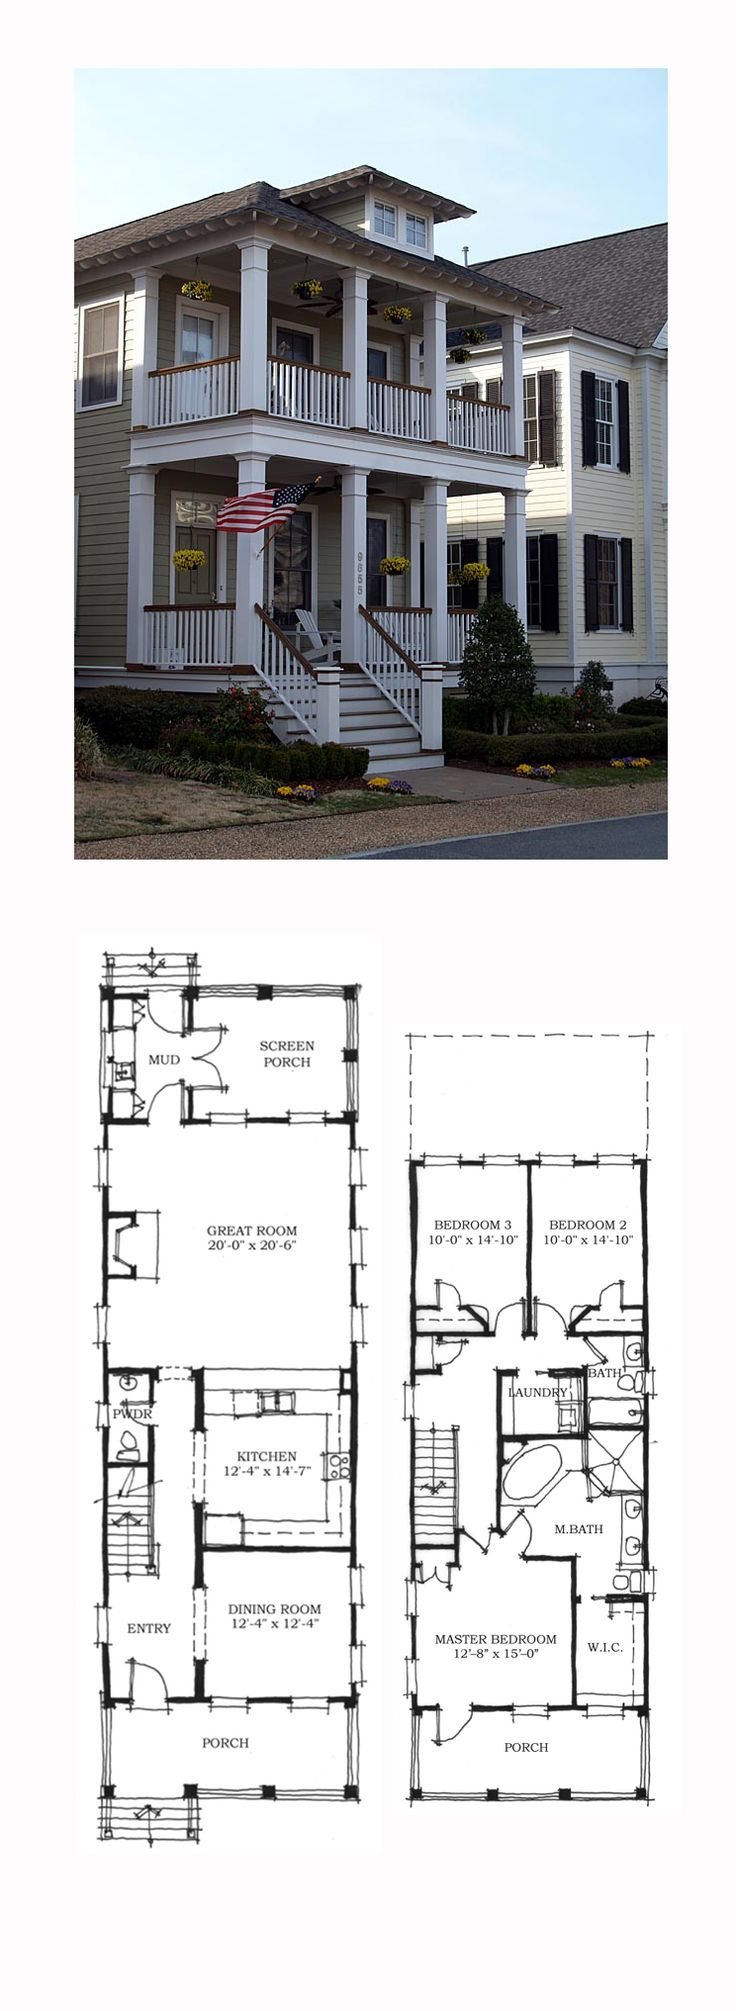 Historic style cool house plan id chp 38667 total for Cool plans